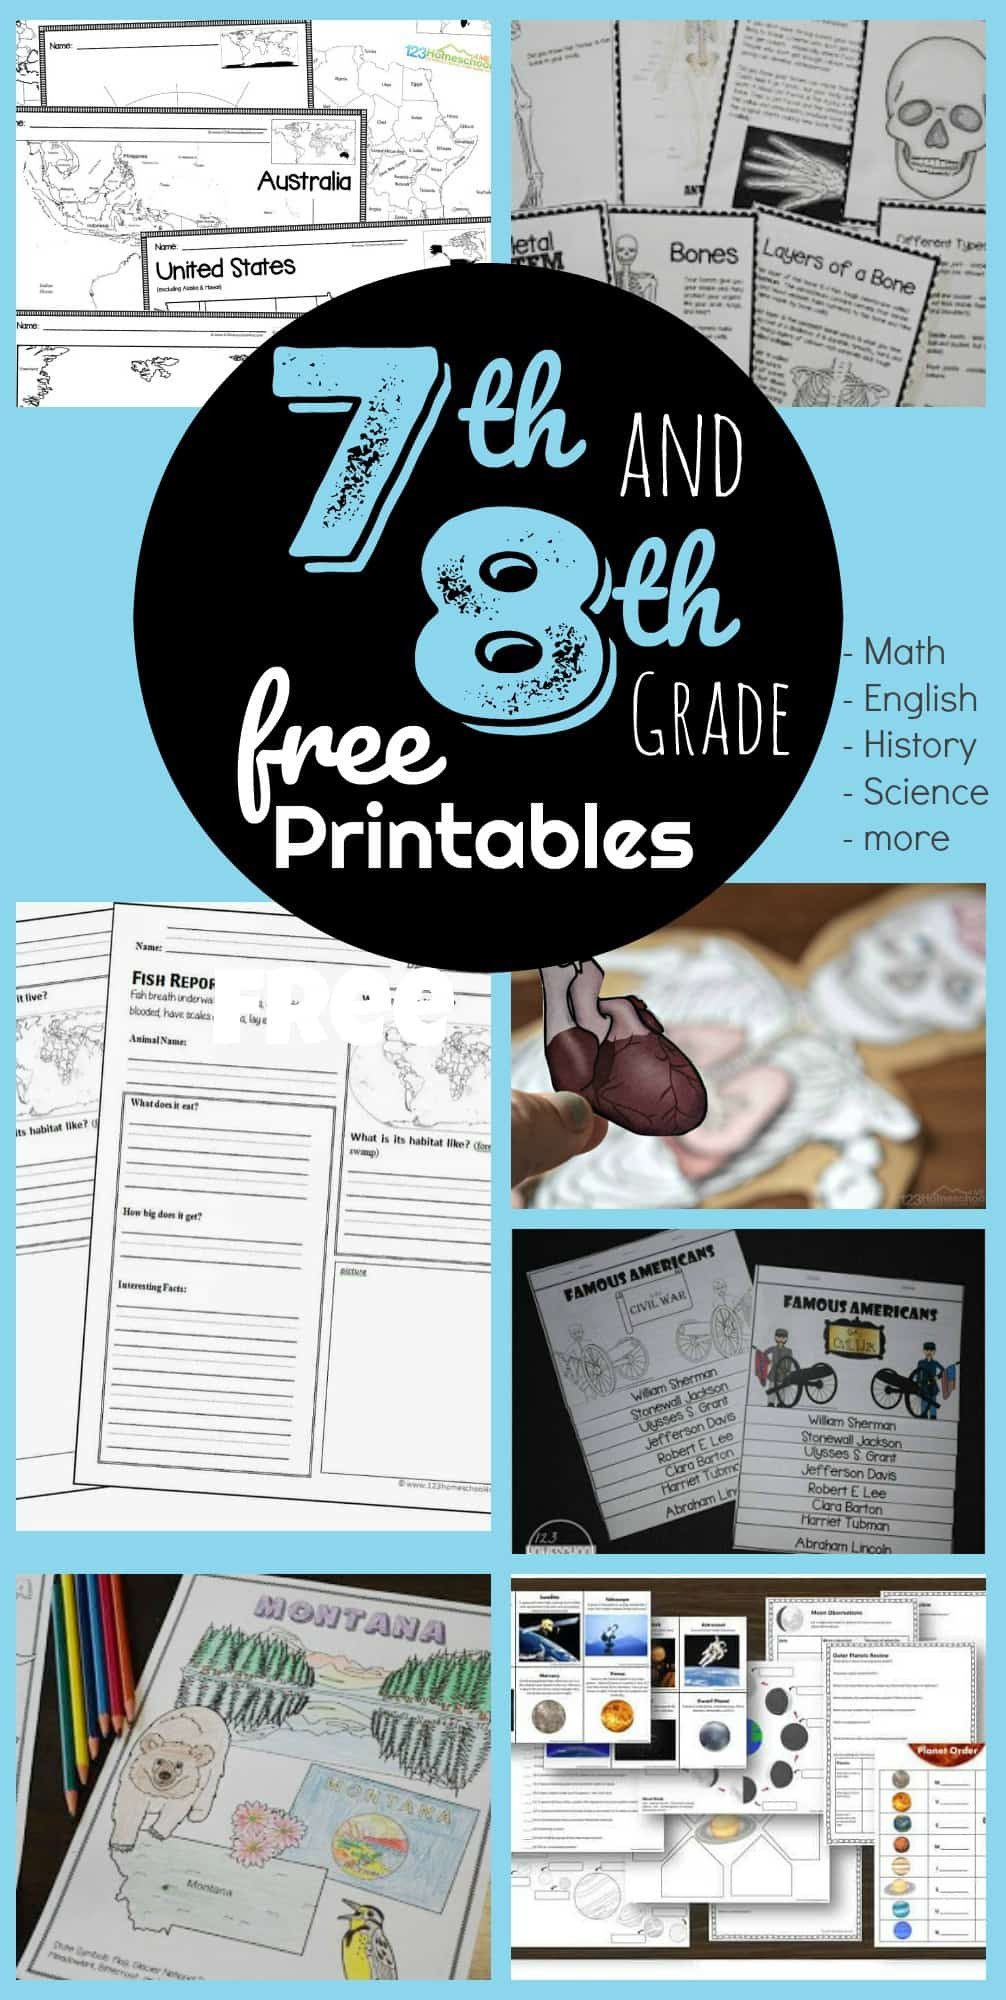 7th Grade Science Worksheets Printable Free 7th & 8th Grade Worksheets